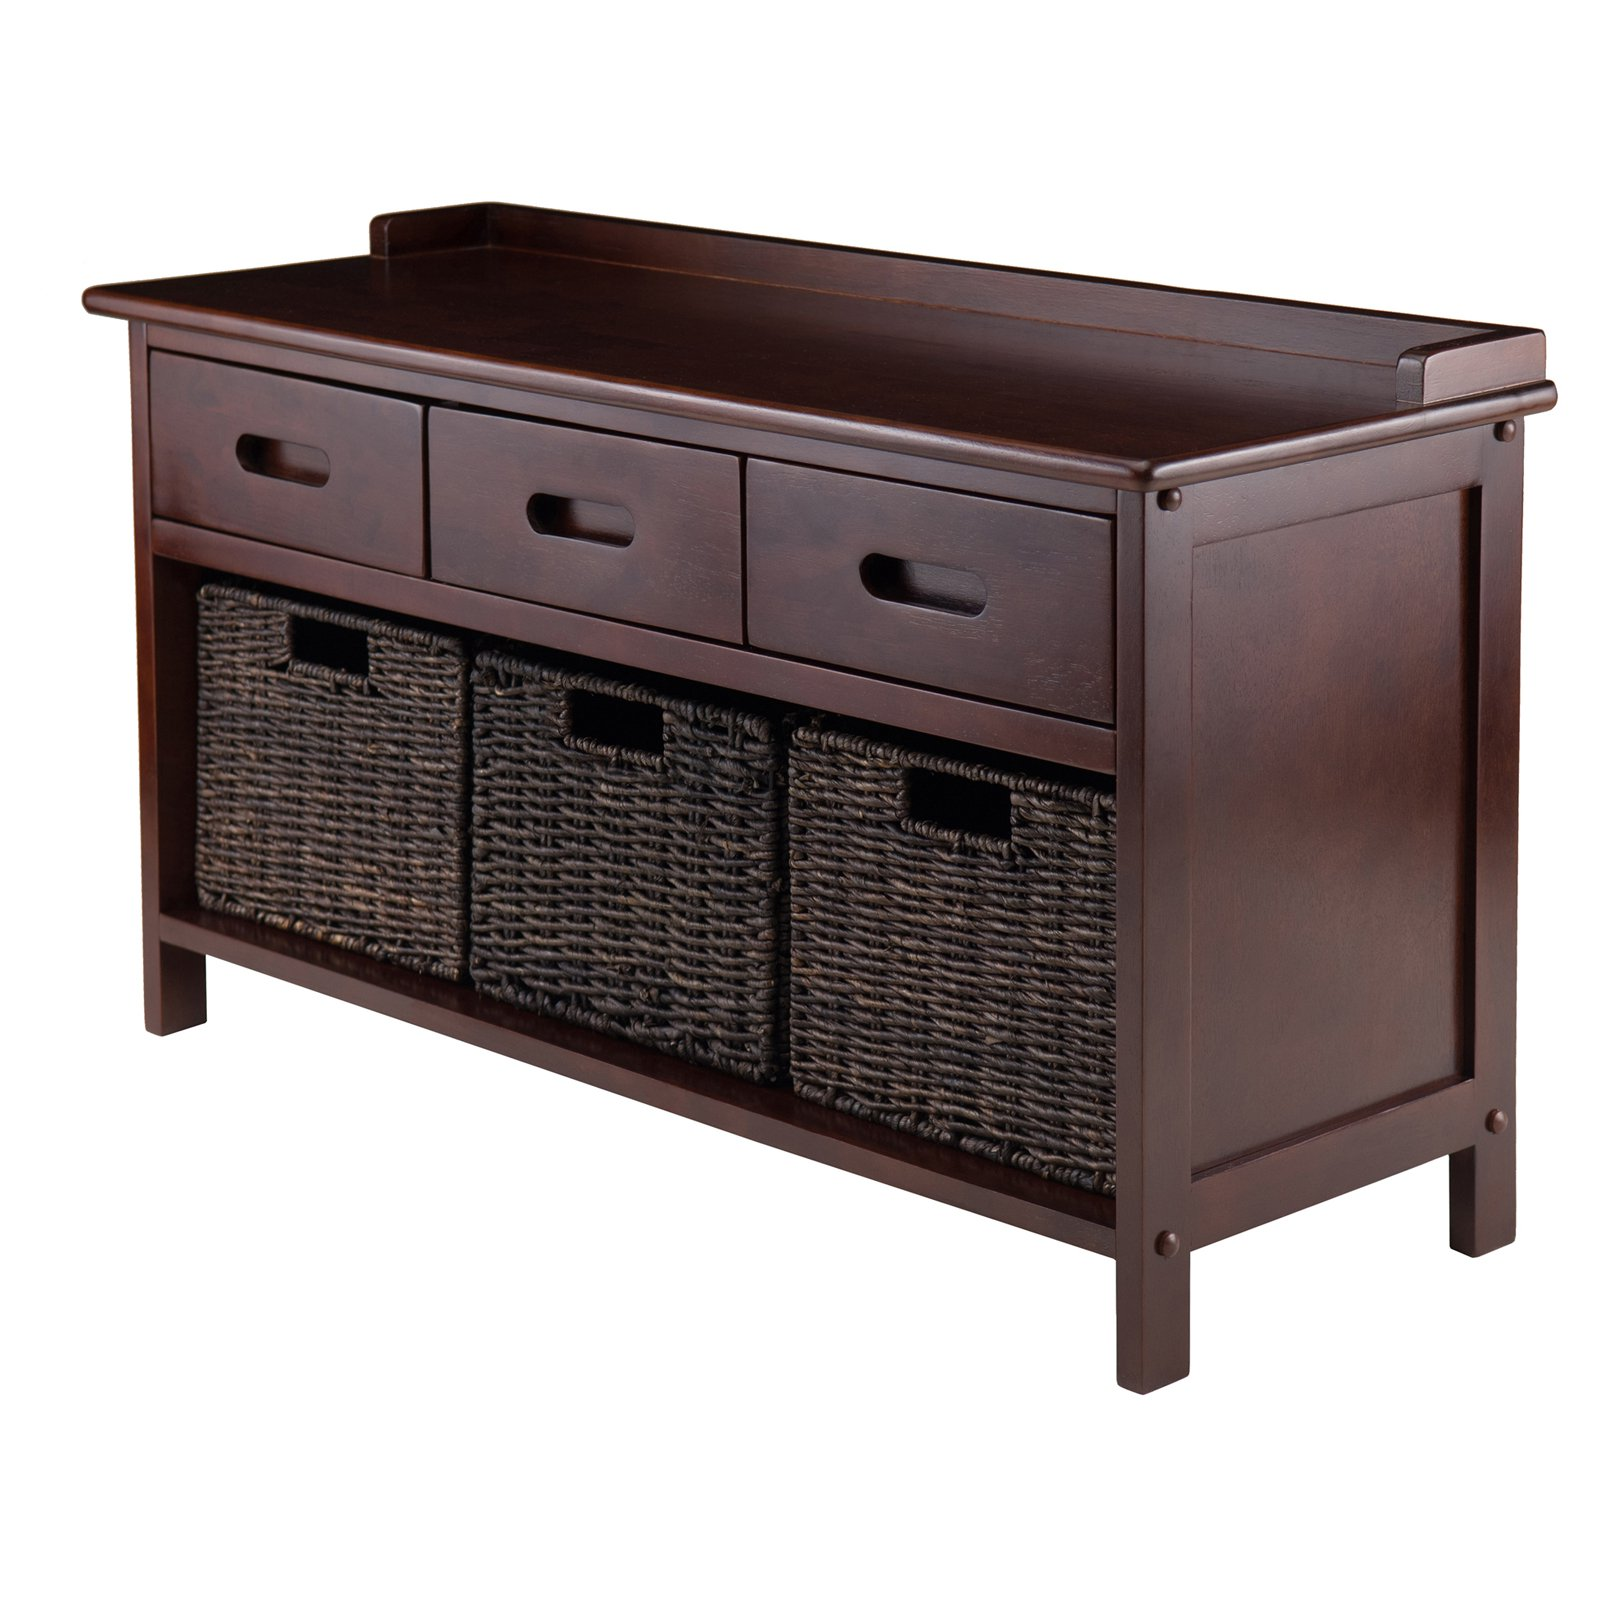 Winsome Wood Adriana 4-Pc Storage Bench with 3 Foldable Baskets